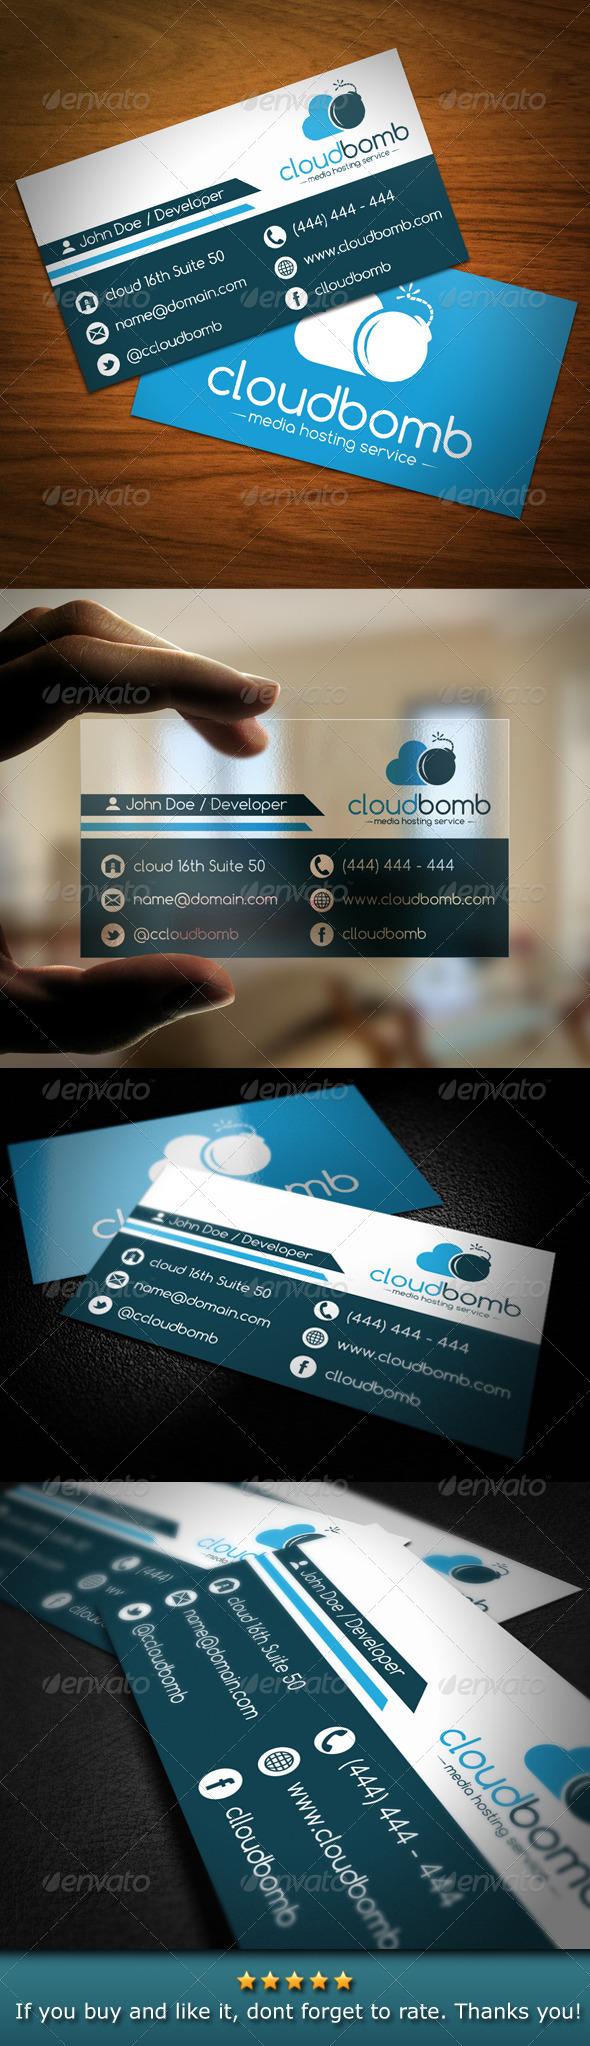 GraphicRiver Media Cloud Bomb Business Card 4766885